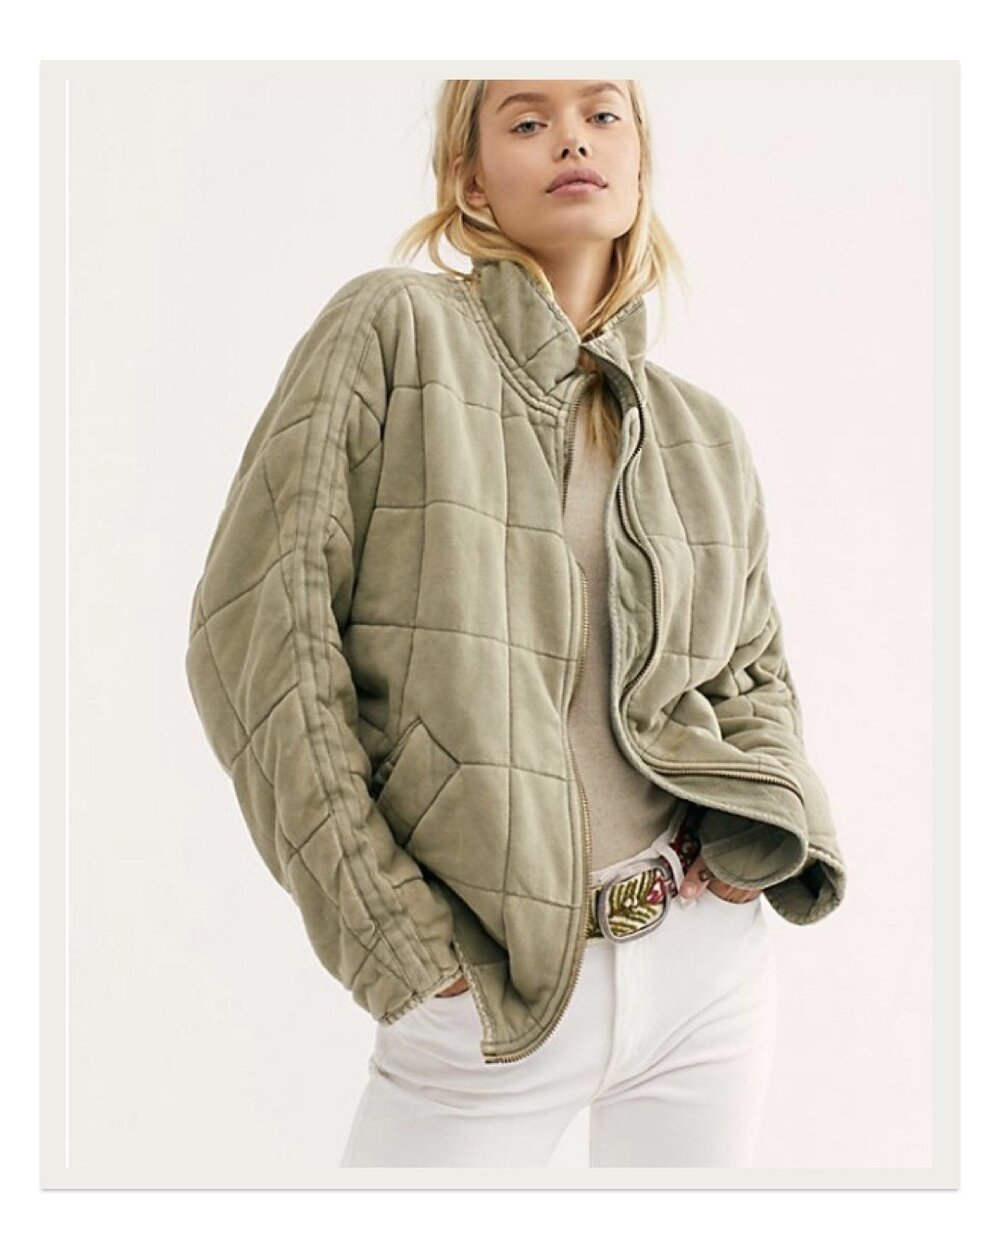 Available in several colors by Free People, this dolman sleeve quilted jacket is the ultimate cozy light coat. It has such an effortlessly cool look to it that's both on trend and classic, and it feels like wearing an upscale sweatshirt.